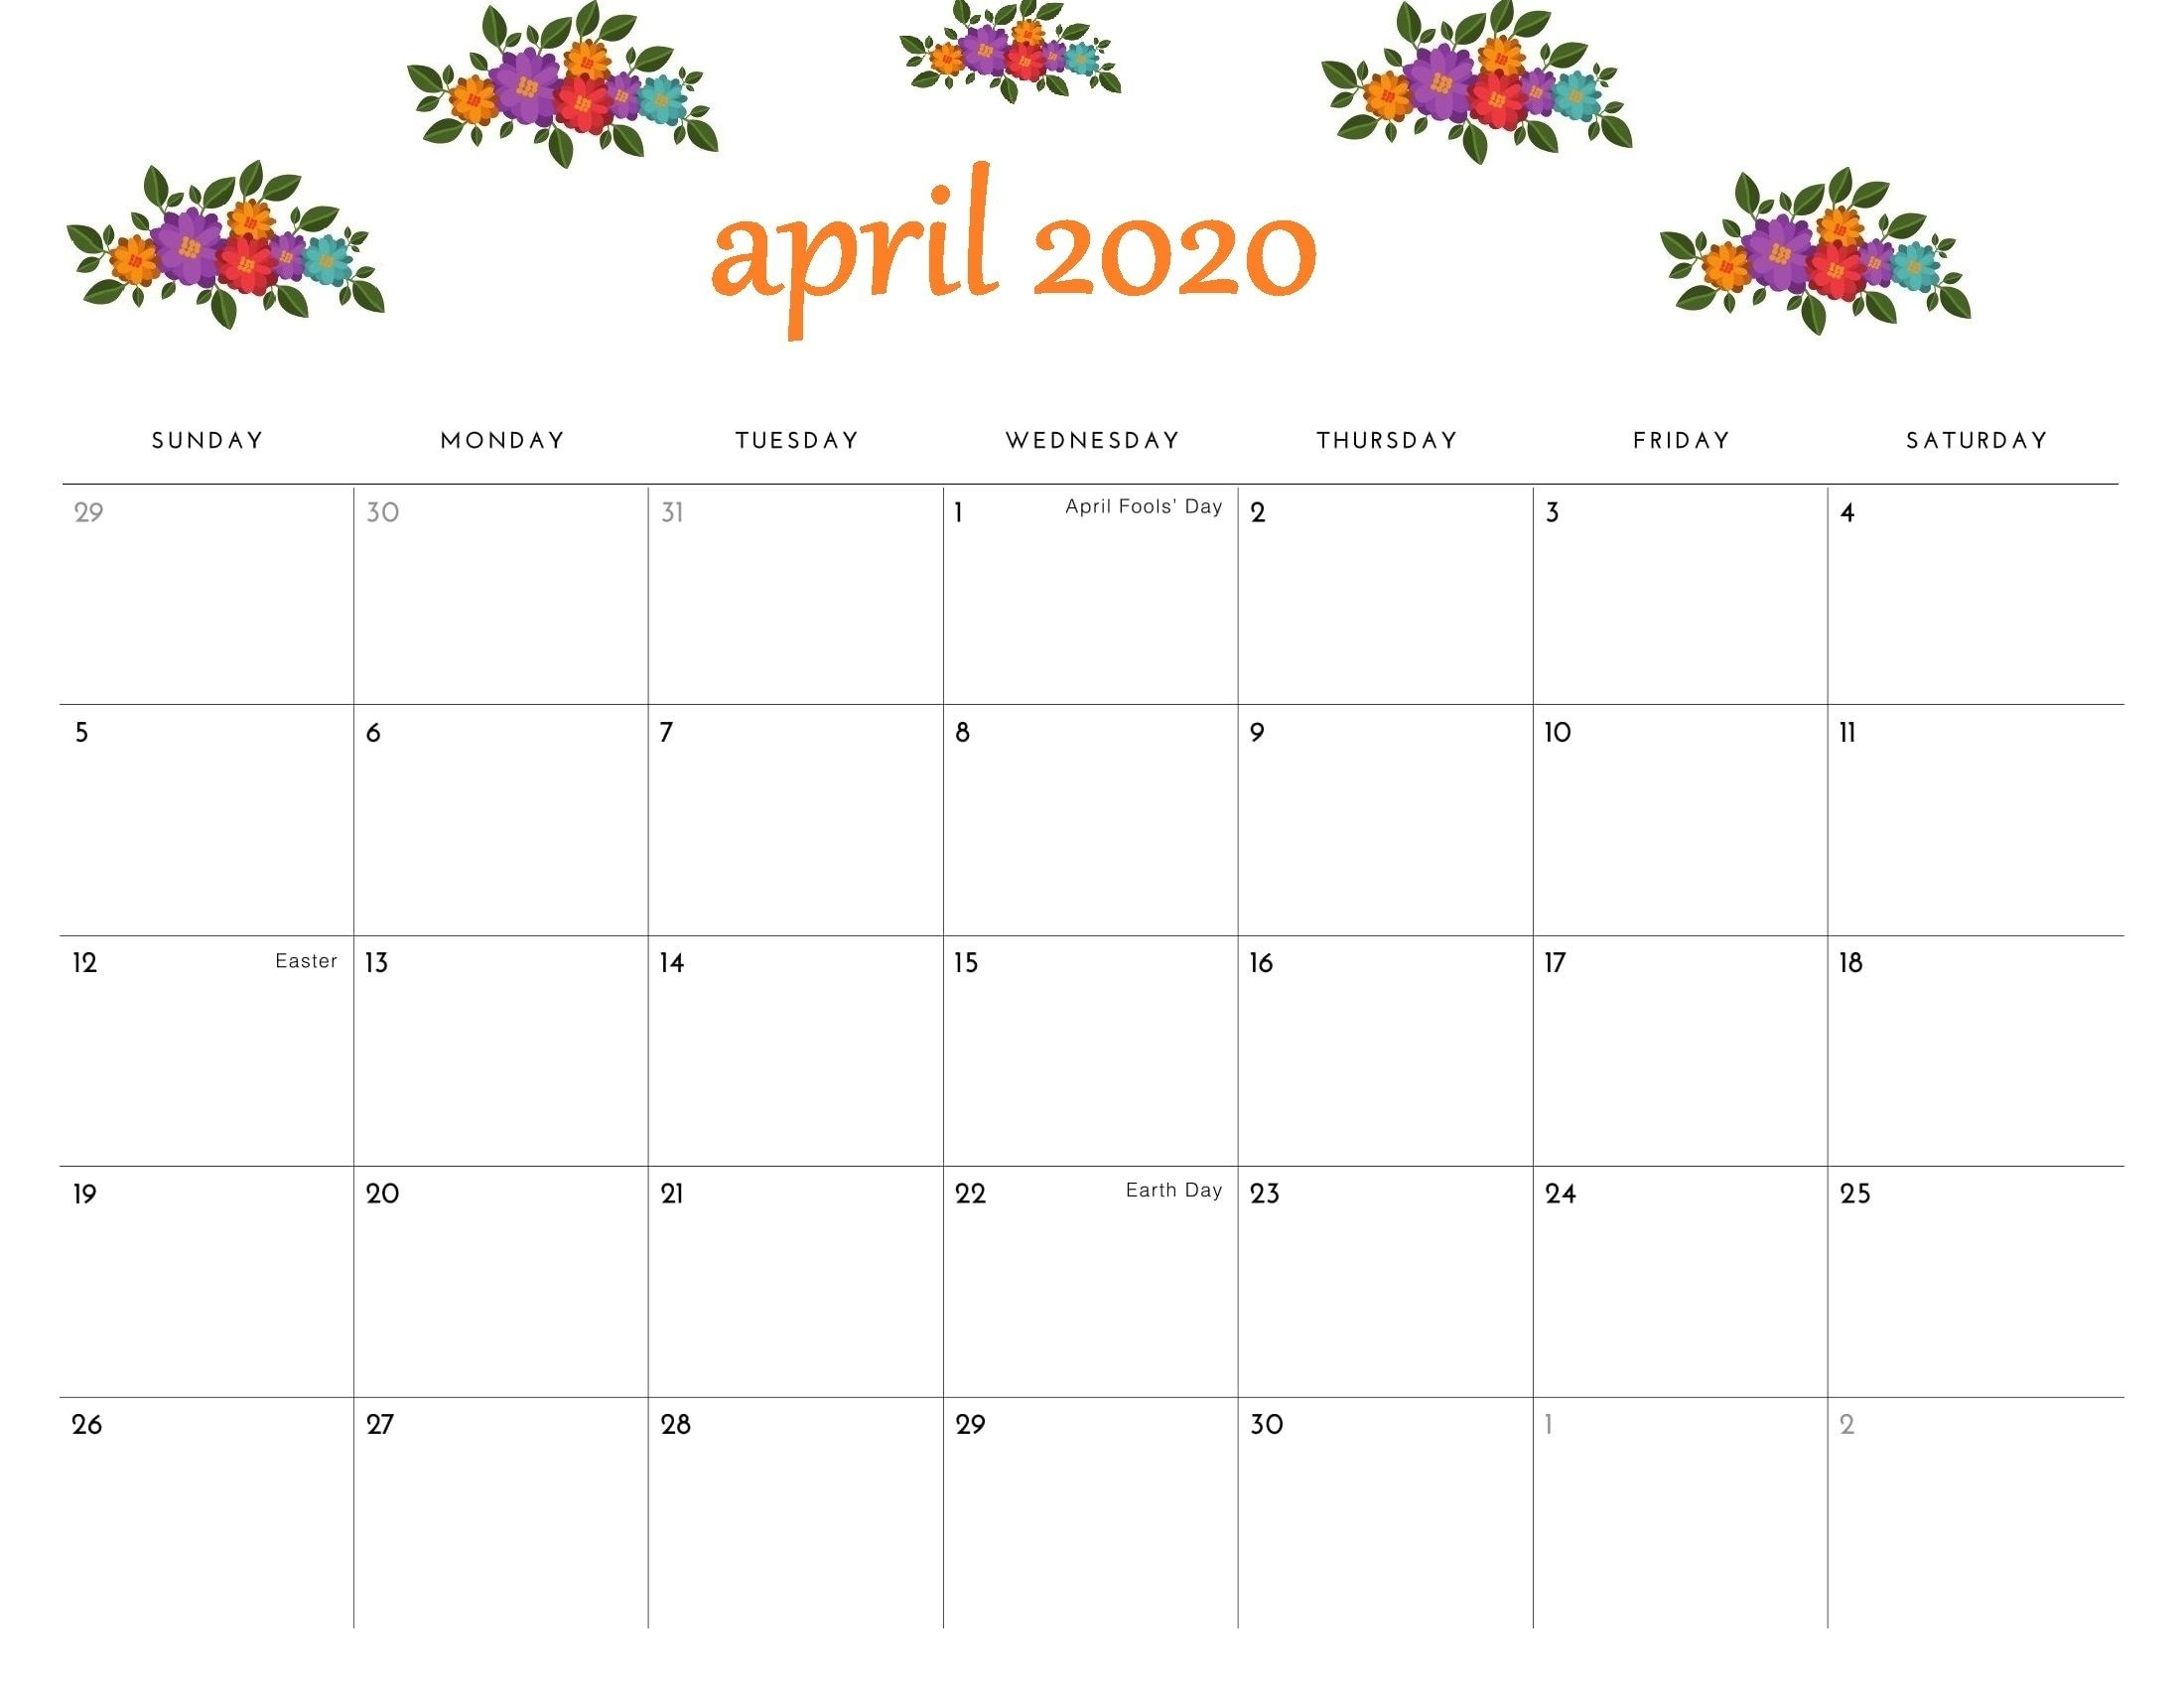 April 2020 Printable Calendar Floral Template In 2020 within Large Box Printable 2020 Calendar